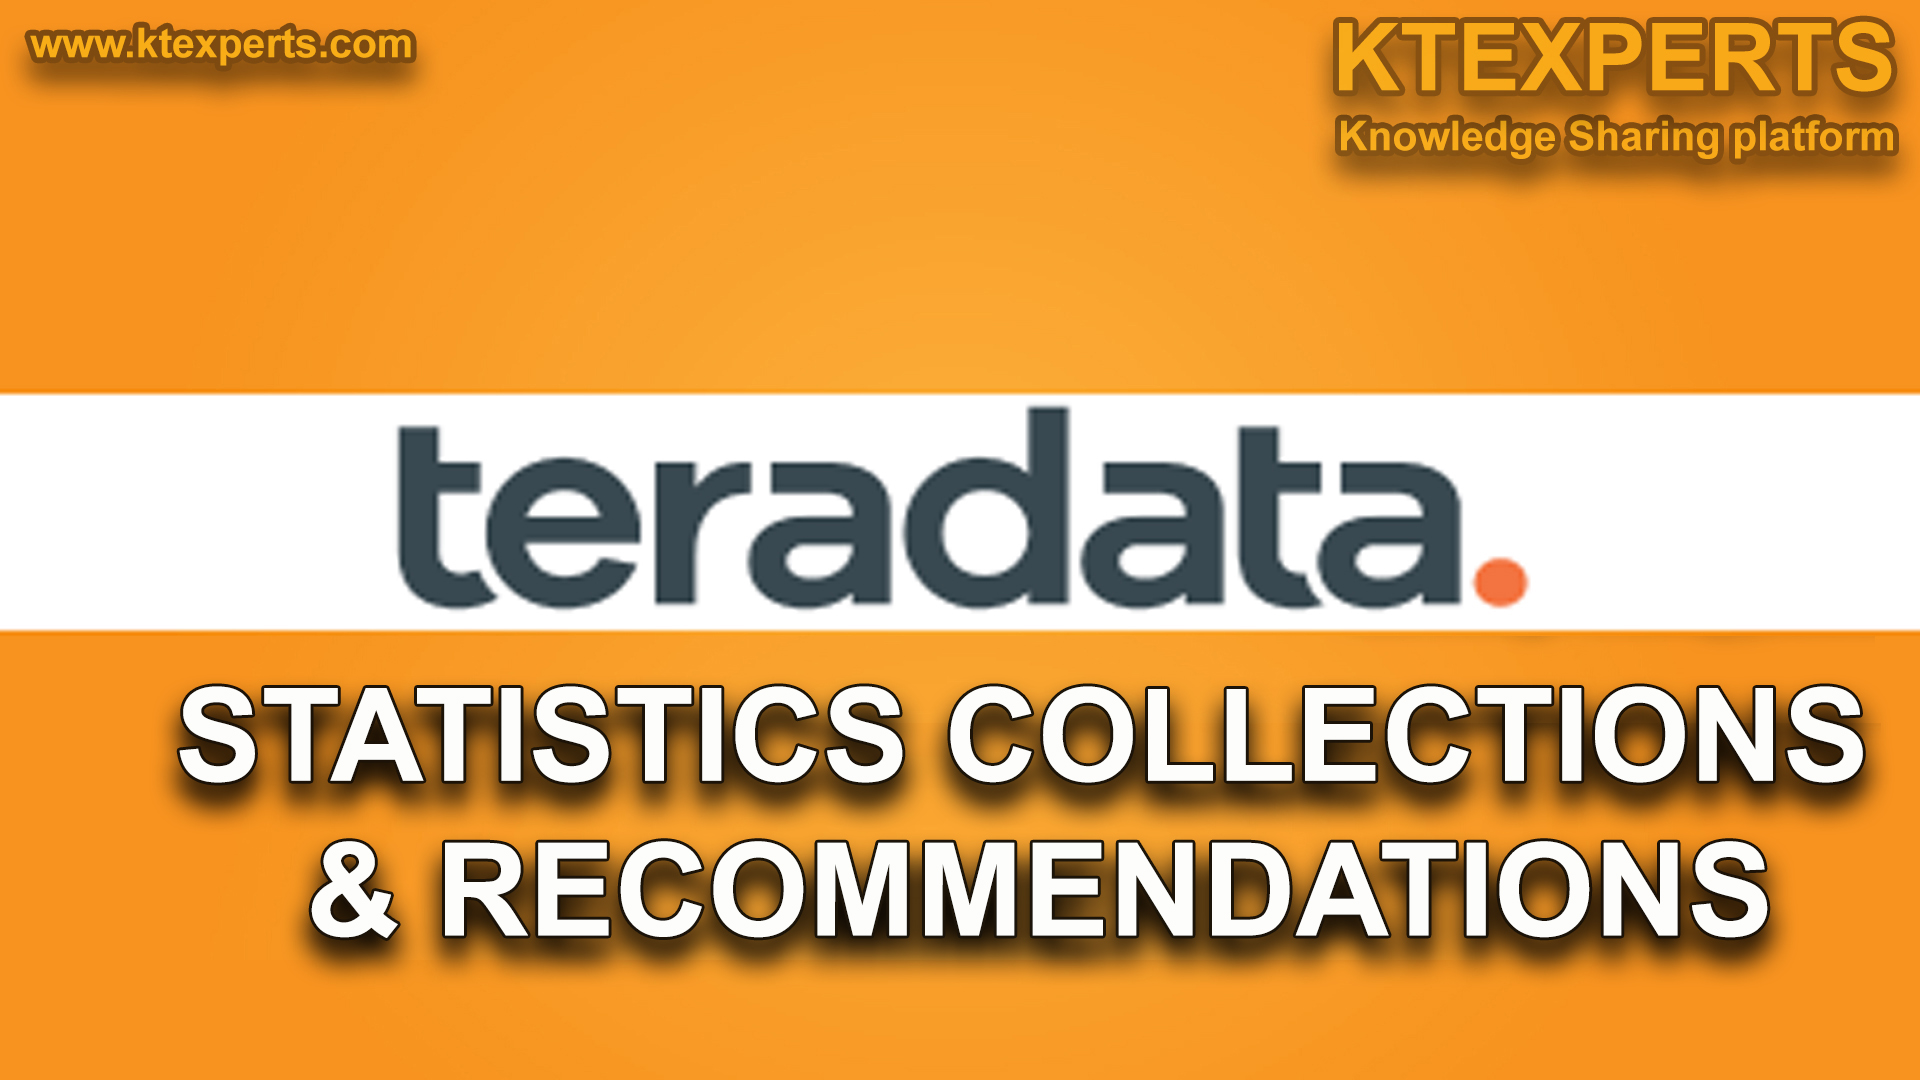 STATISTICS COLLECTIONS AND RECOMMENDATIONS